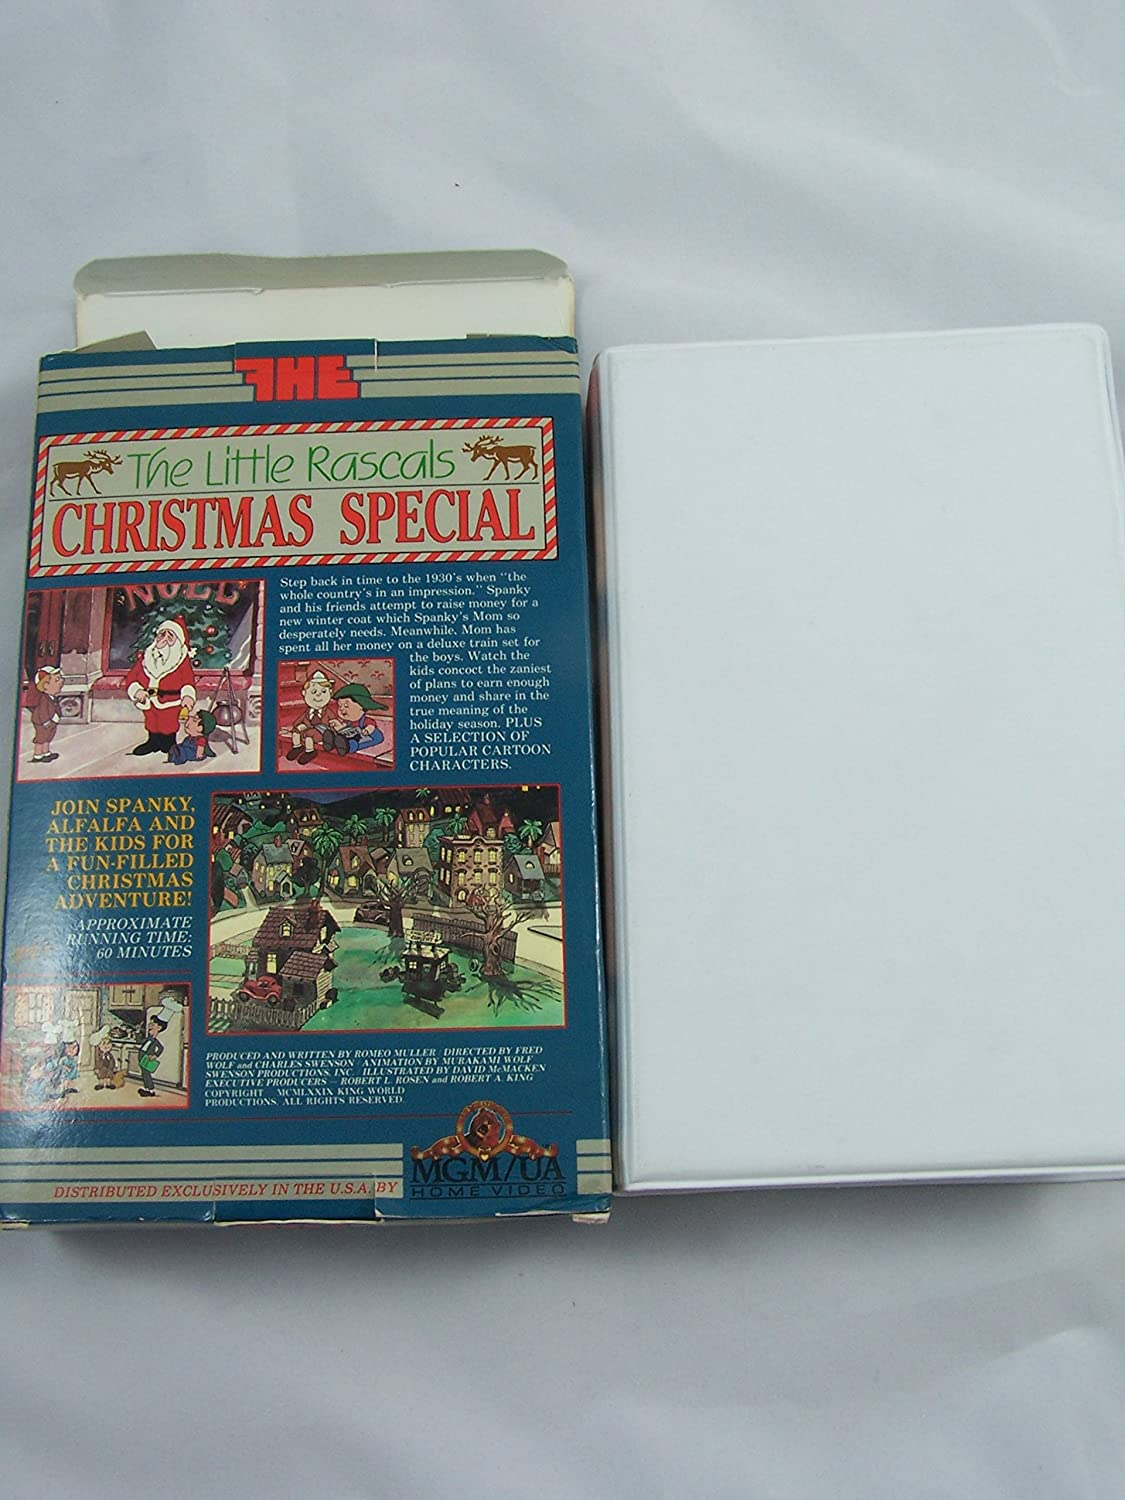 Amazon.com: The Little Rascals Christmas Special (Animated ...